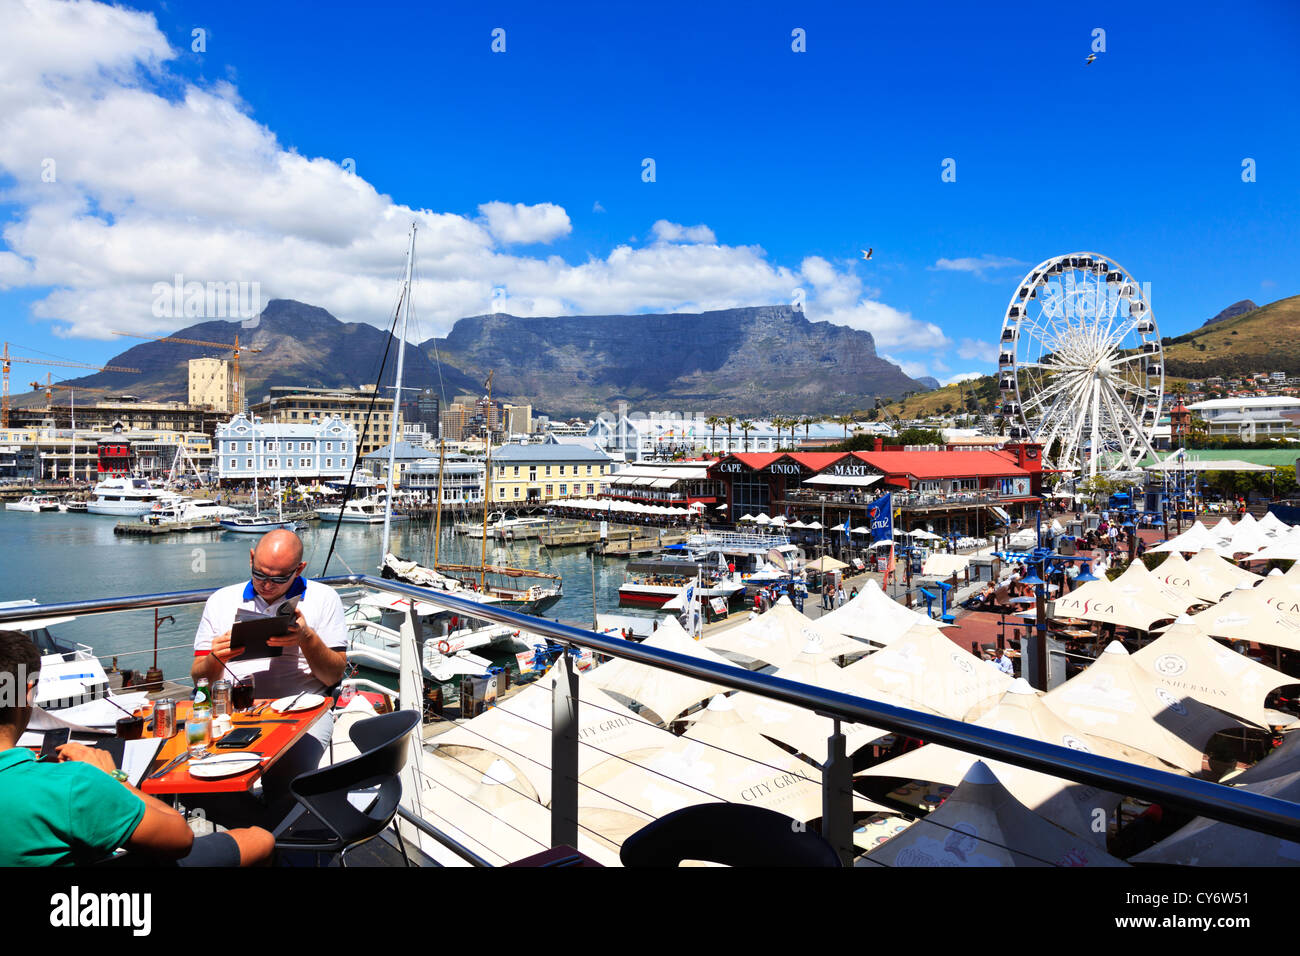 Diners having lunch at an open air restaurant at the Victoria and Albert waterfront Cape Town South Africa. - Stock Image